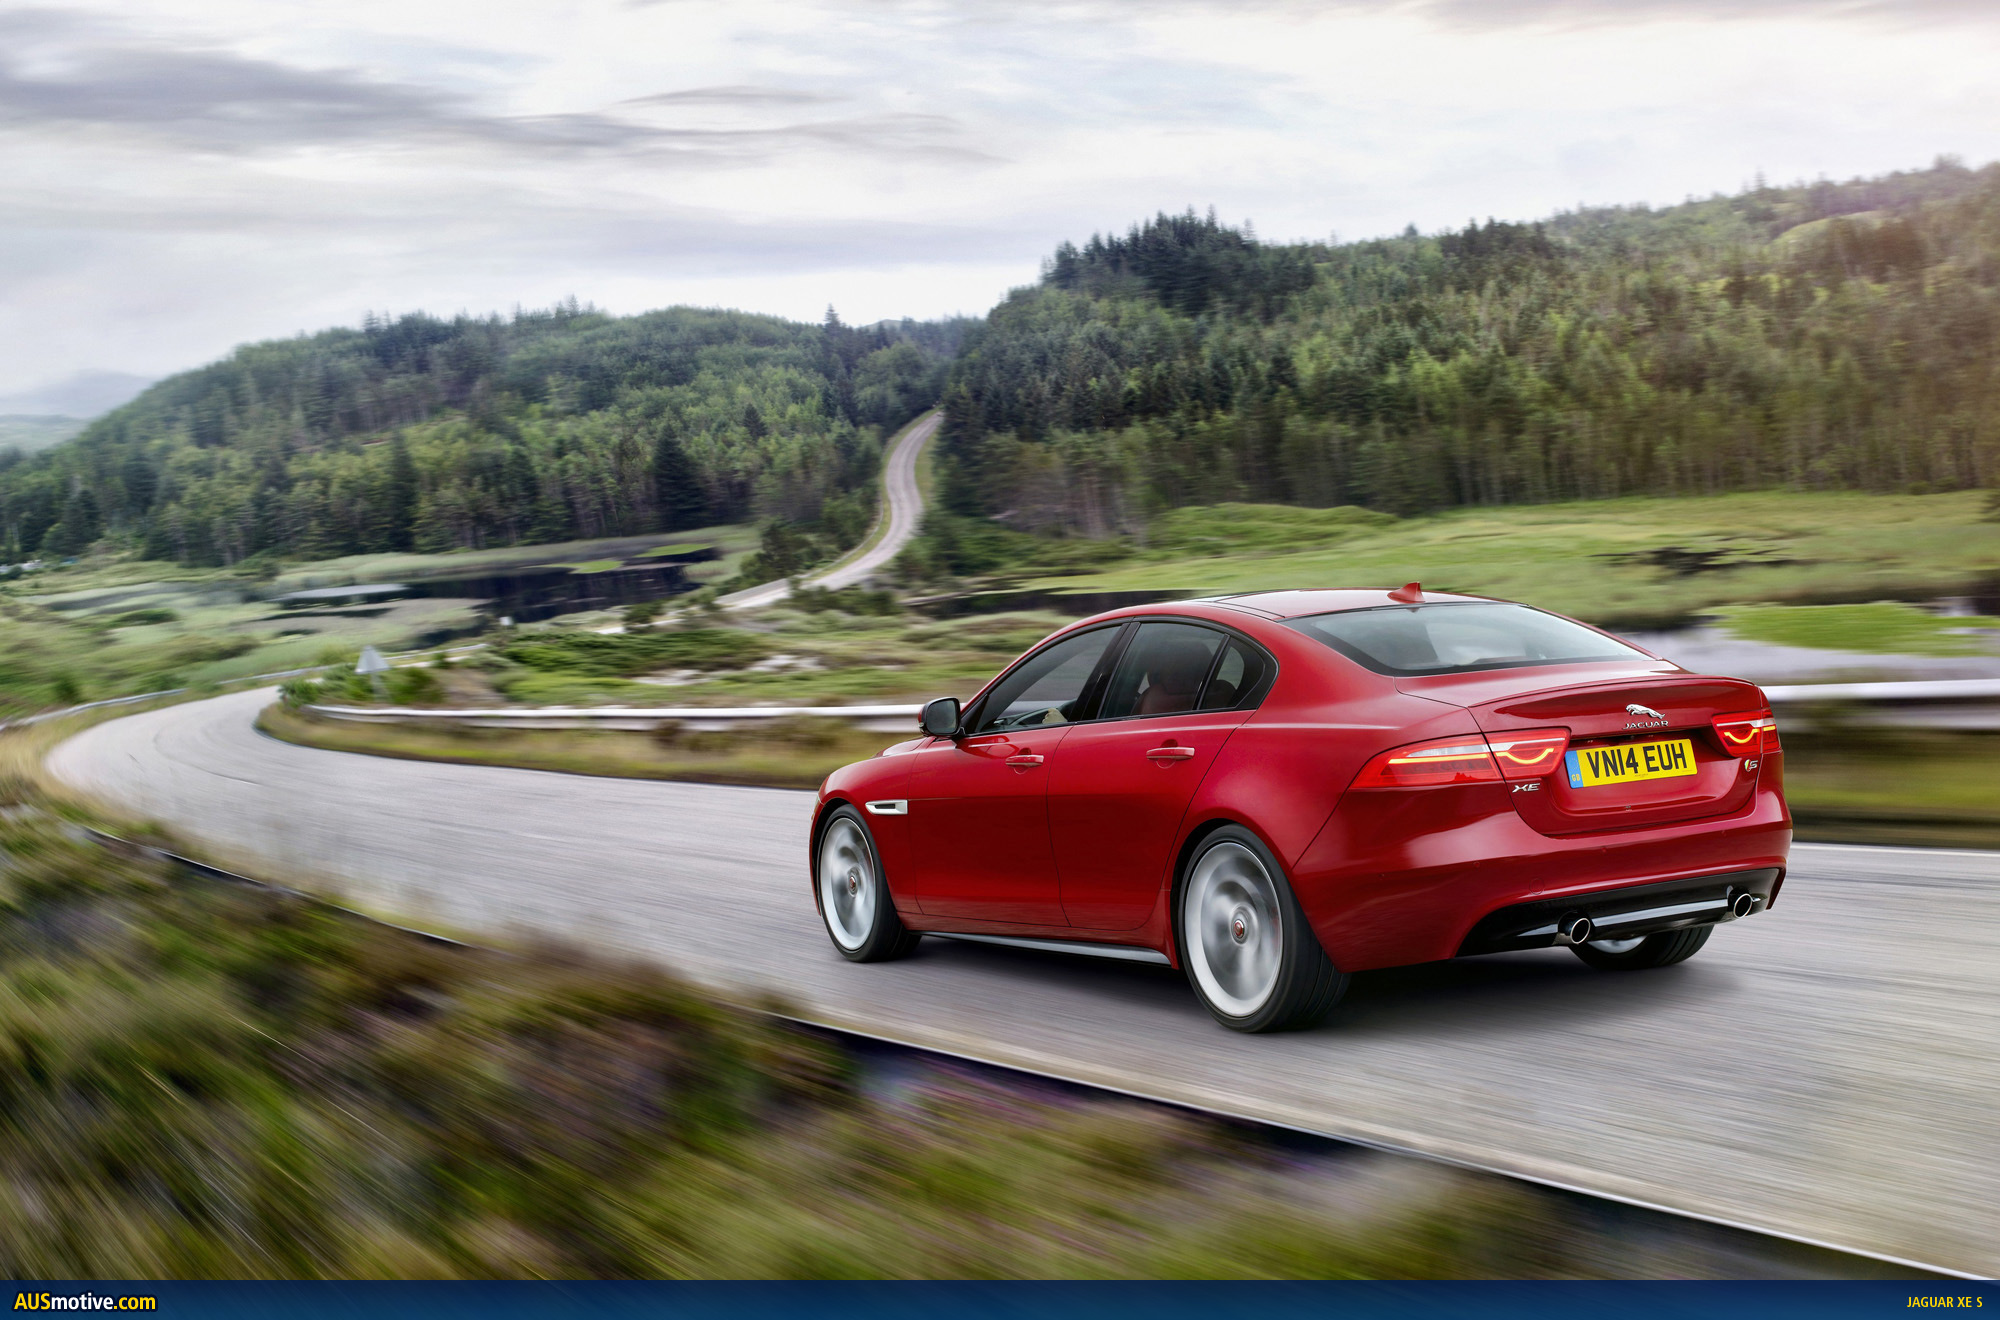 AUSmotive.com » Jaguar XE revealed